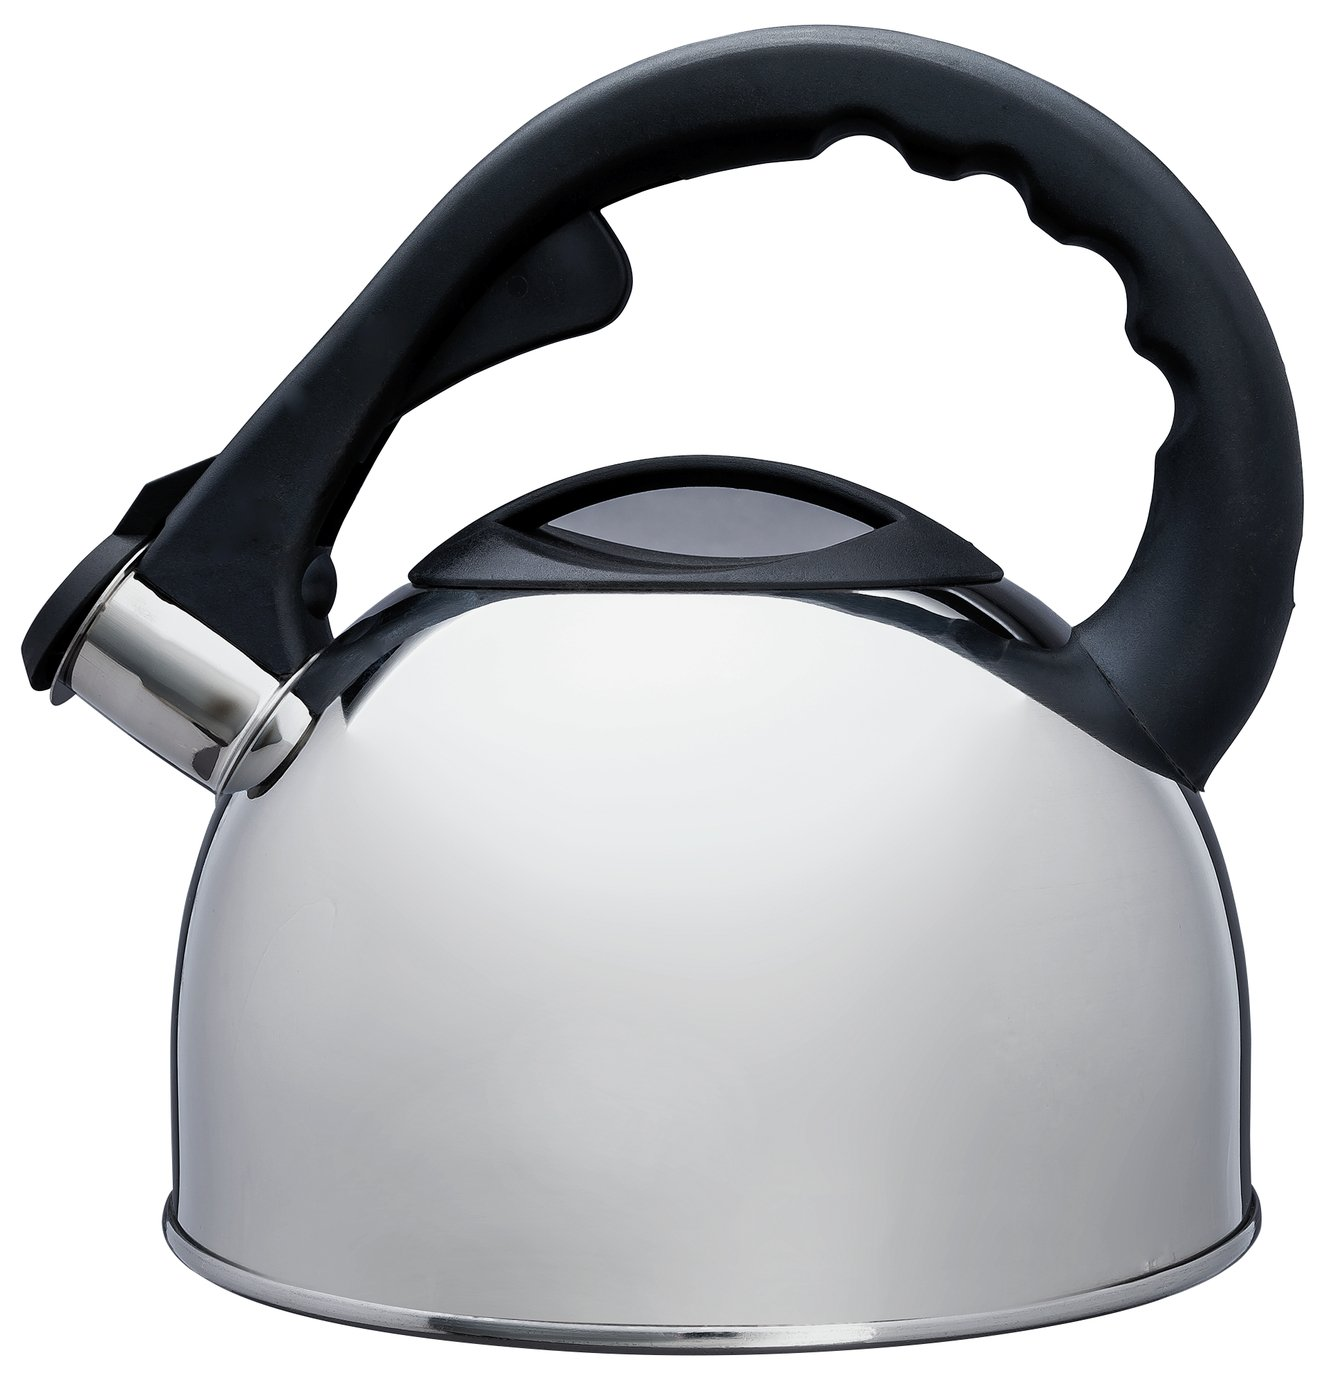 Argos Home Polished Stainless Steel Stove Top Kettle